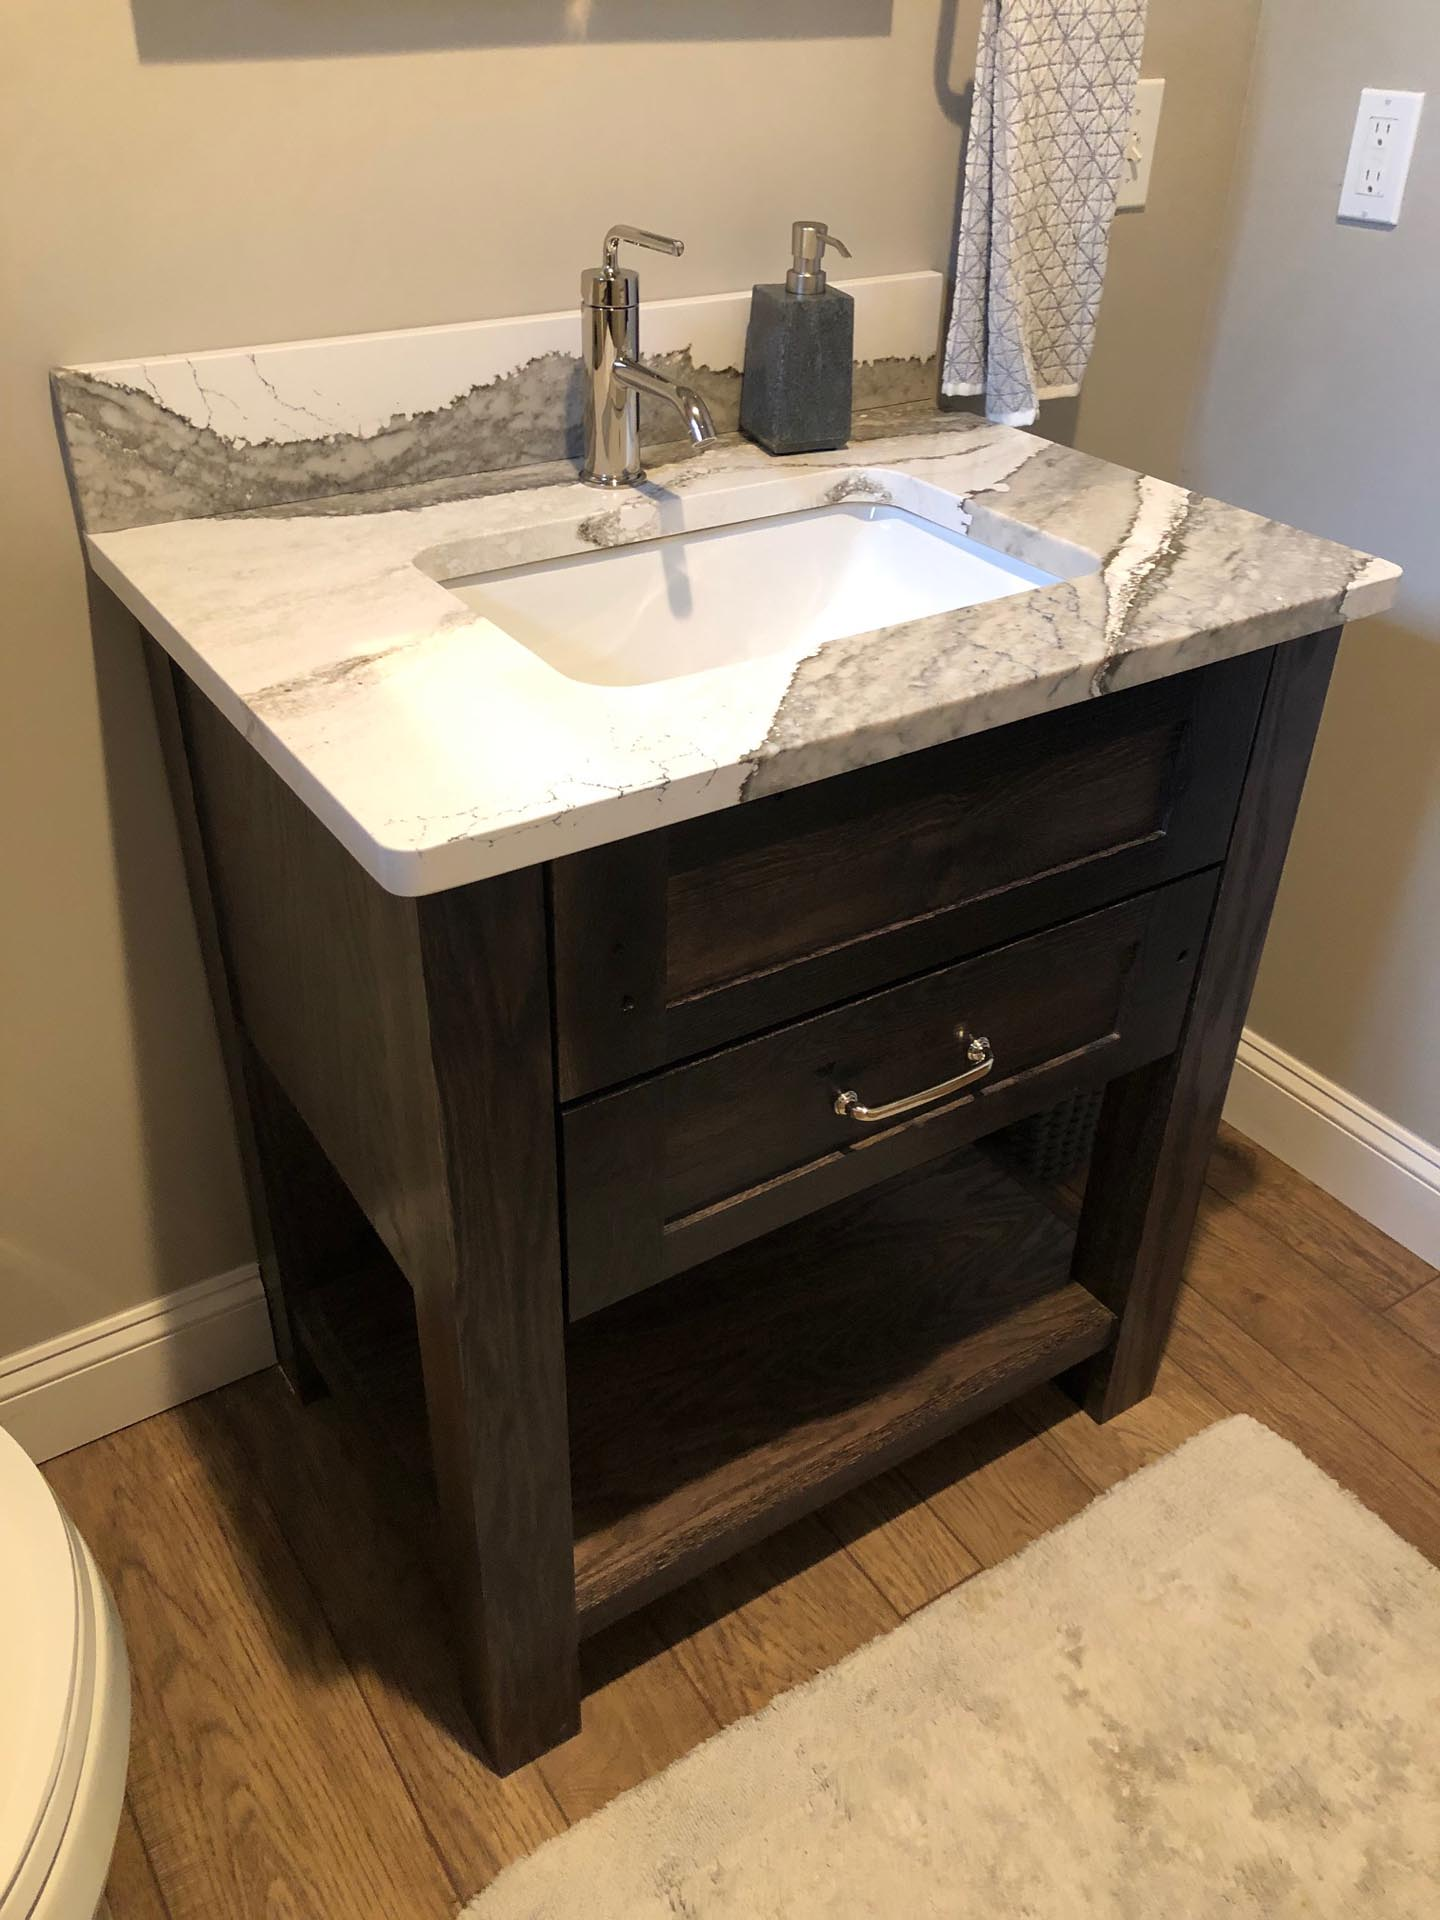 Bathroom Faucet and Sink Installation